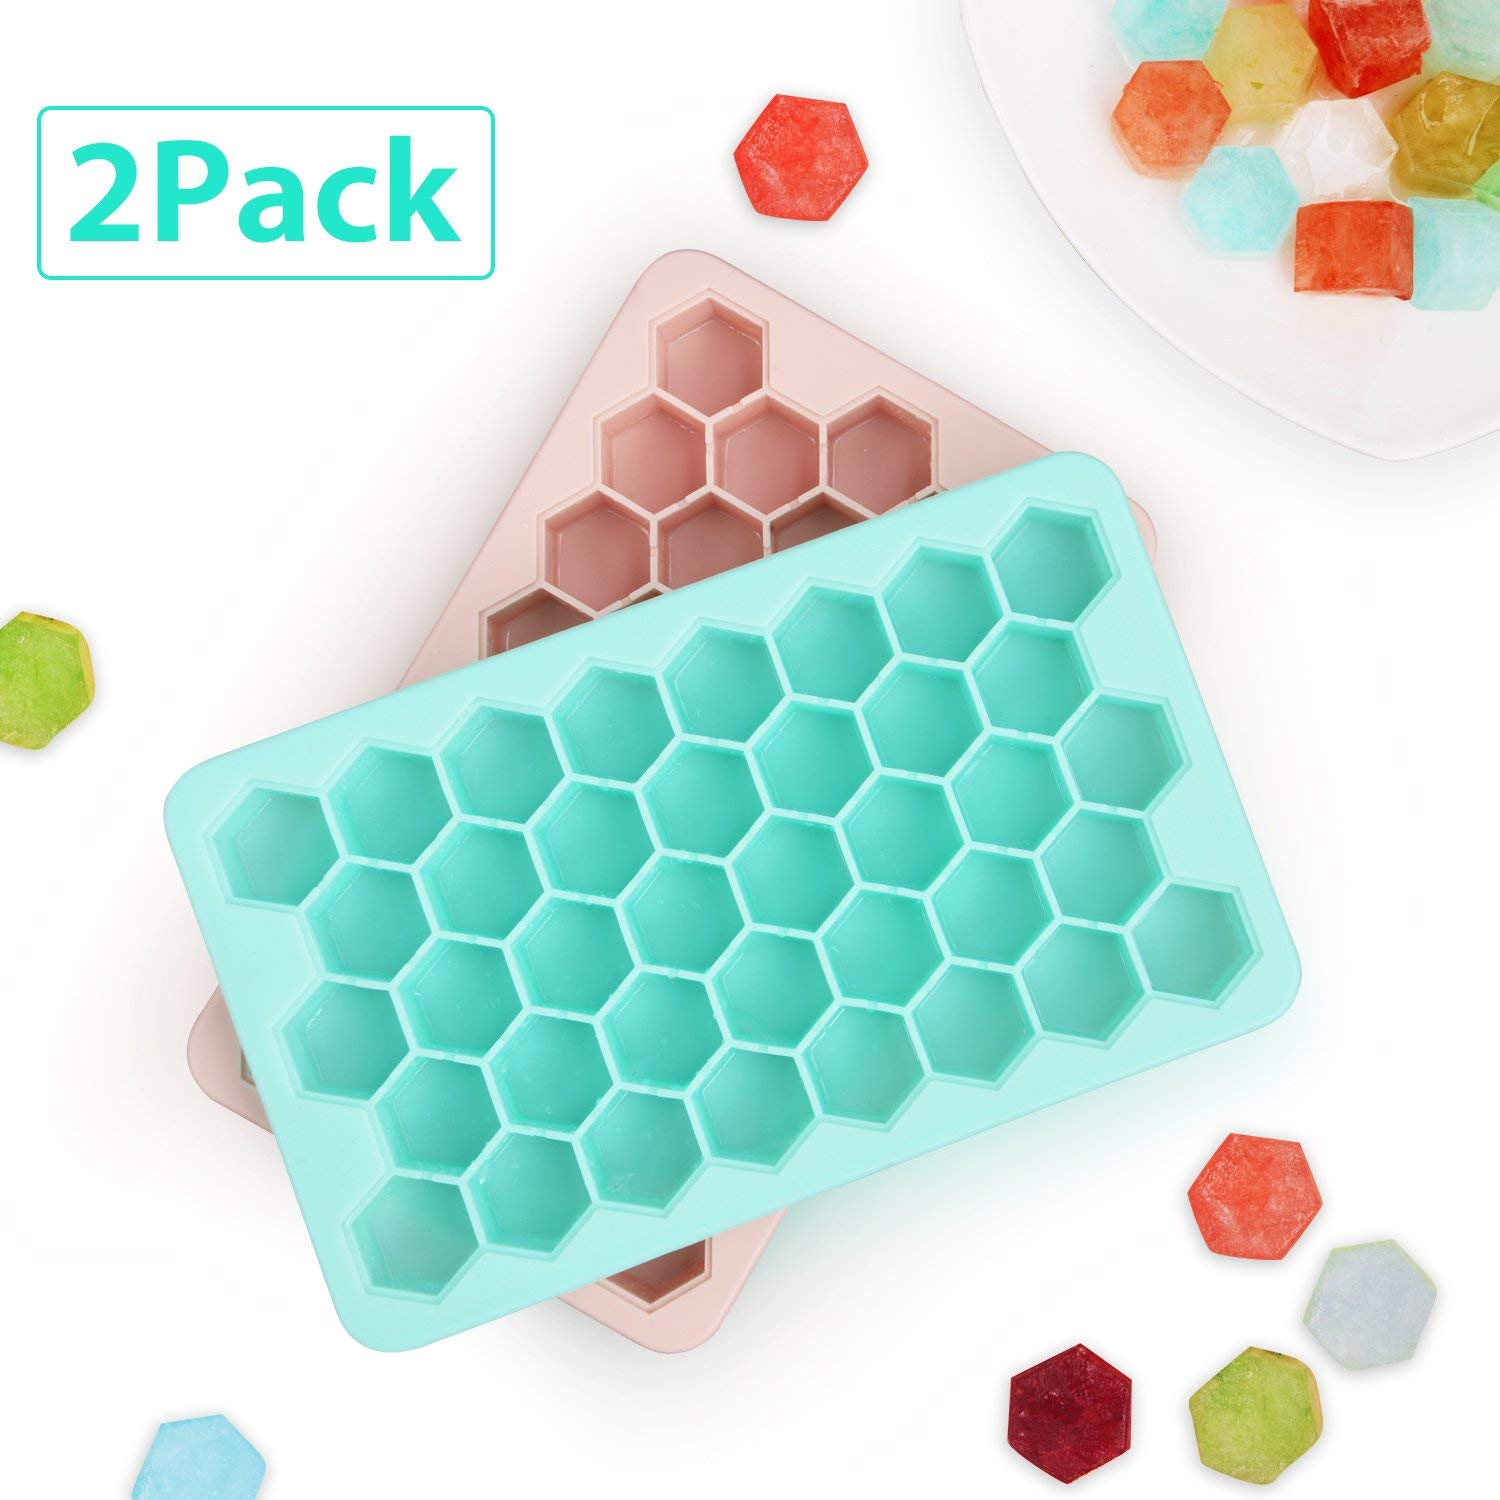 Benewell Silicone Ice Cube Trays Set of 2, Easy Release Honeycomb Shape Ice Molds, Perfect Ice Trays for Bourbon, Whiskey, Cocktail, Beverages and More - 38 Cubes Each, BPA-Free, FDA & LFGB Approval